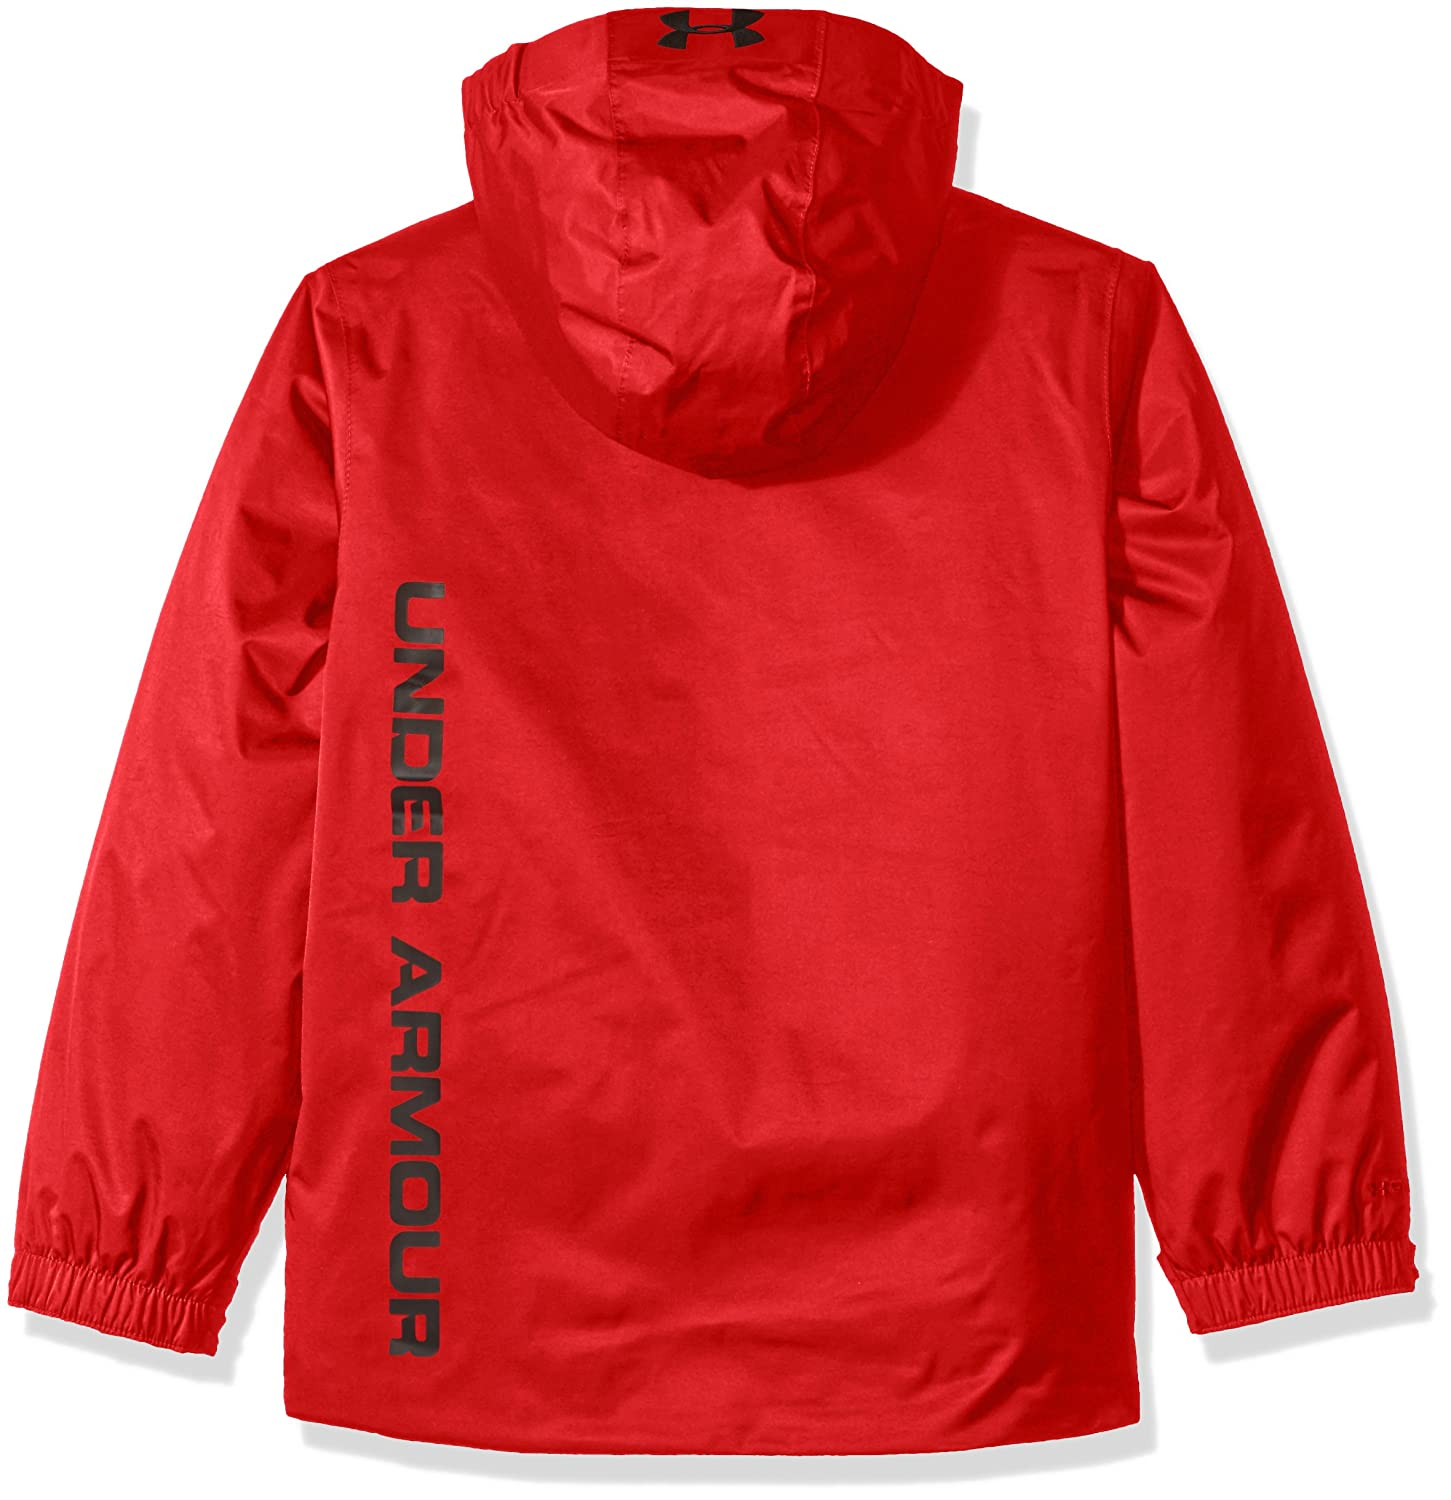 Under Armour Boys ColdGear Reactor Yonders Jacket